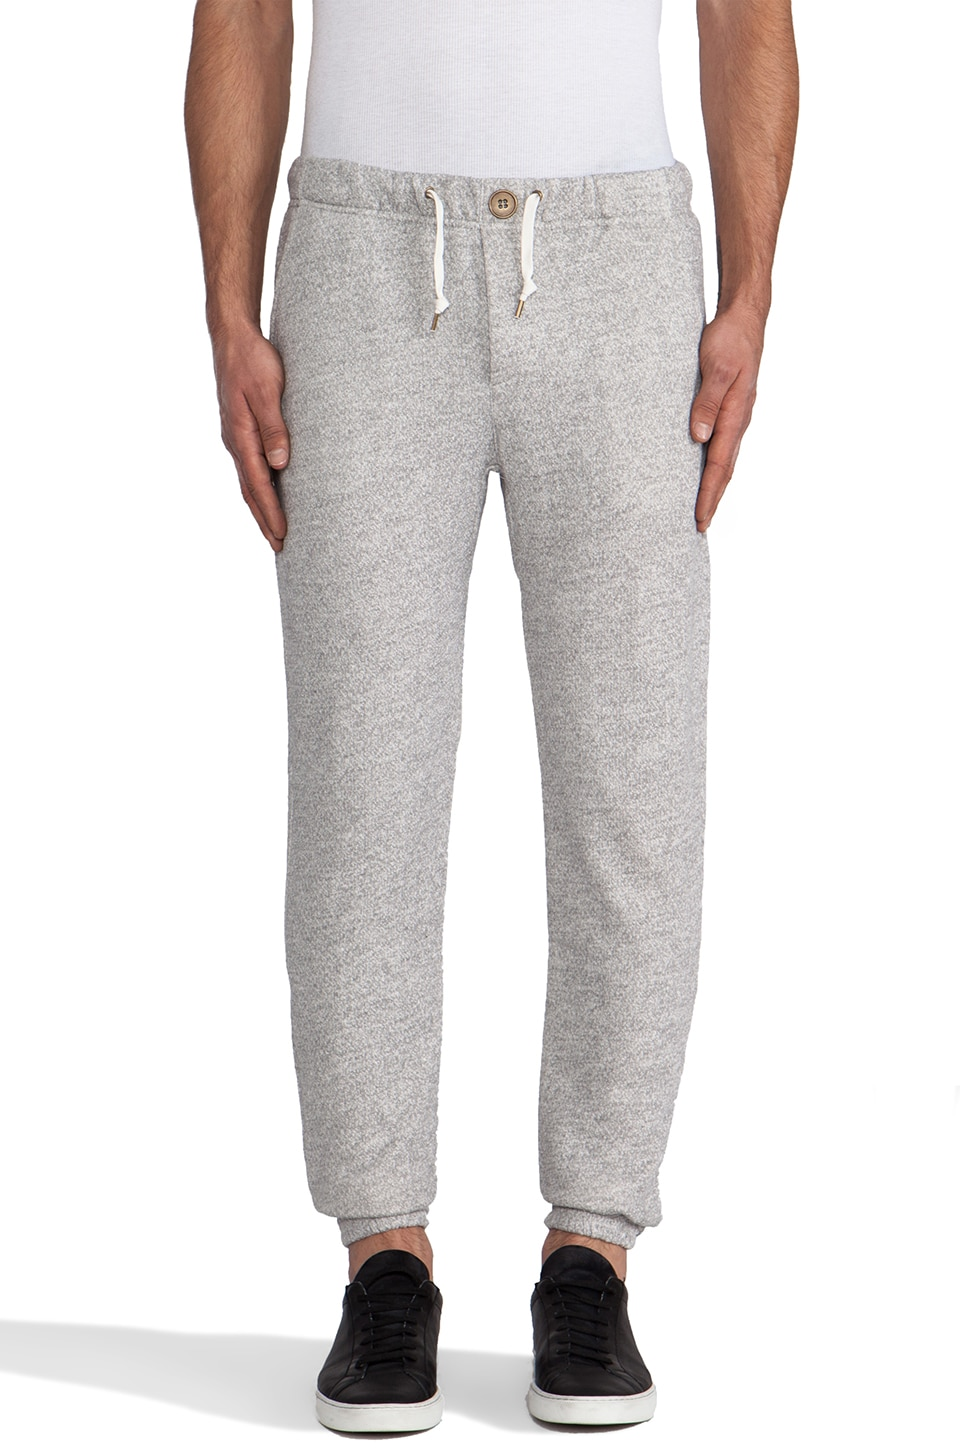 Obey Bowen Fleece Pants in Heather Grey